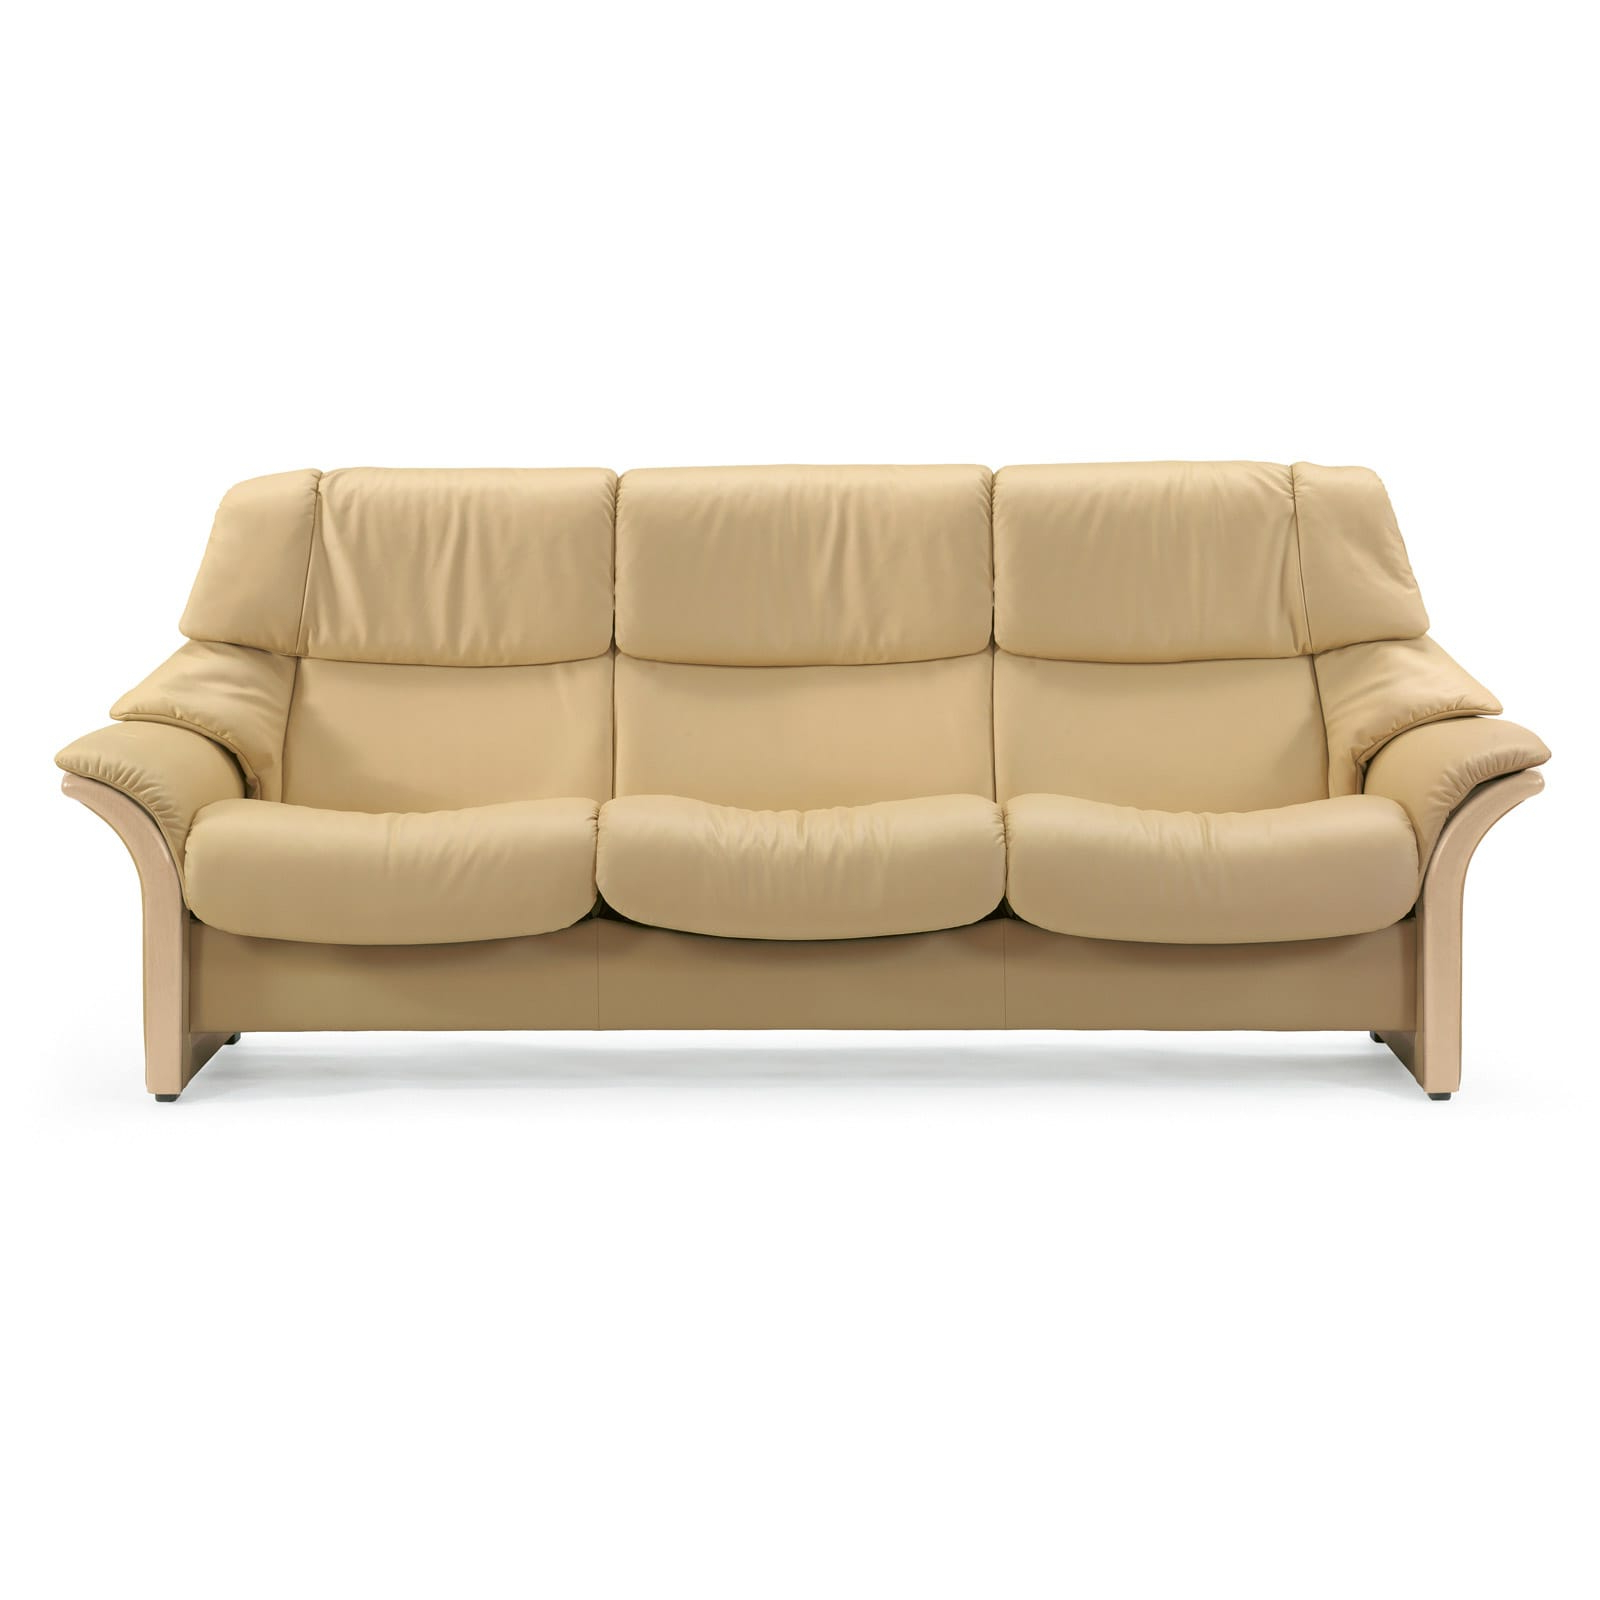 2019 Stressless 3 Sitzer Eldorado (m) Hoch Leder Paloma Sand Holz Natur Throughout Paloma Sofas With Cushions (Gallery 14 of 25)